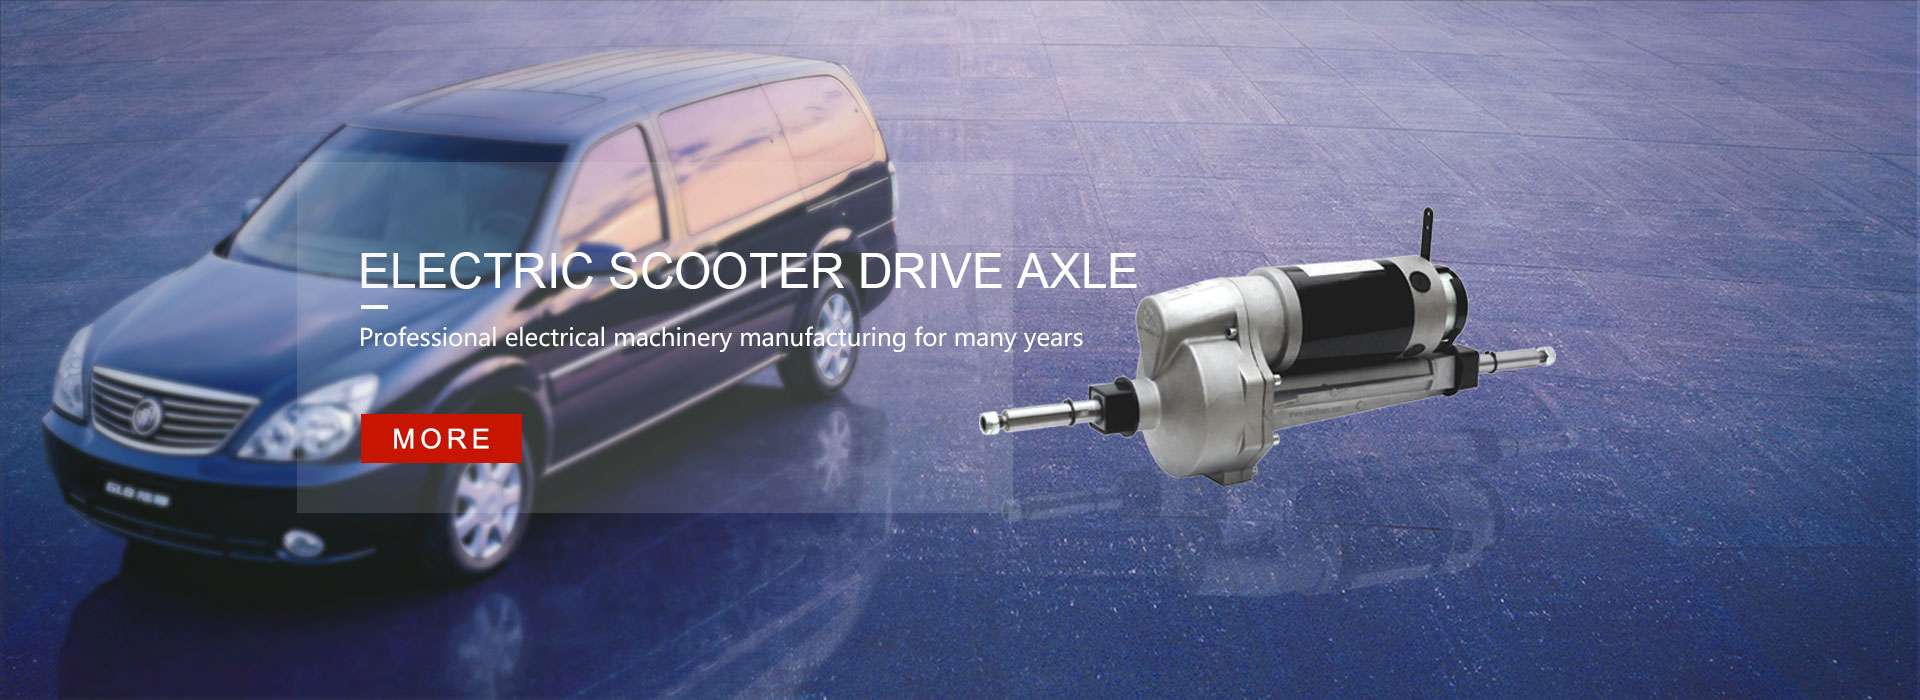 Electric scooter drive axle